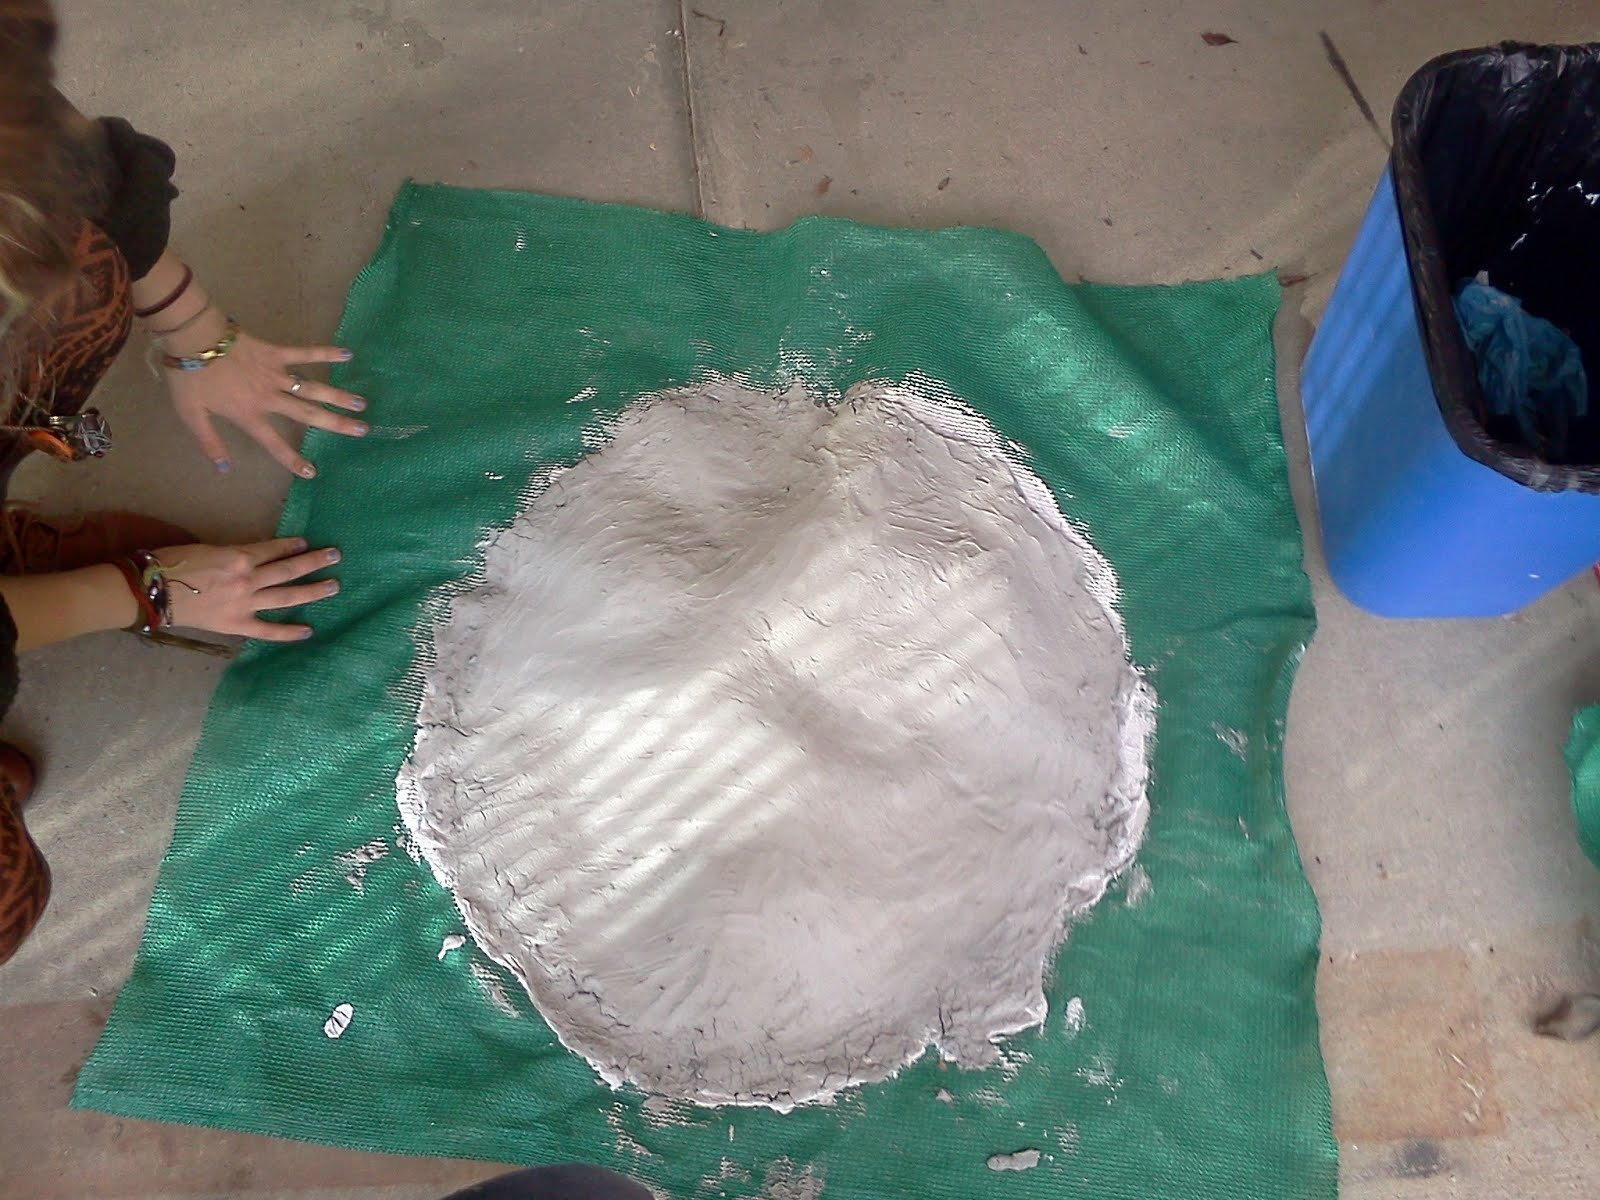 Latex-cement dish made in Lab #3 without a plastic mold underneath. Notice that is cannot hold it's own weight and is slightly concave on the outside in some areas.